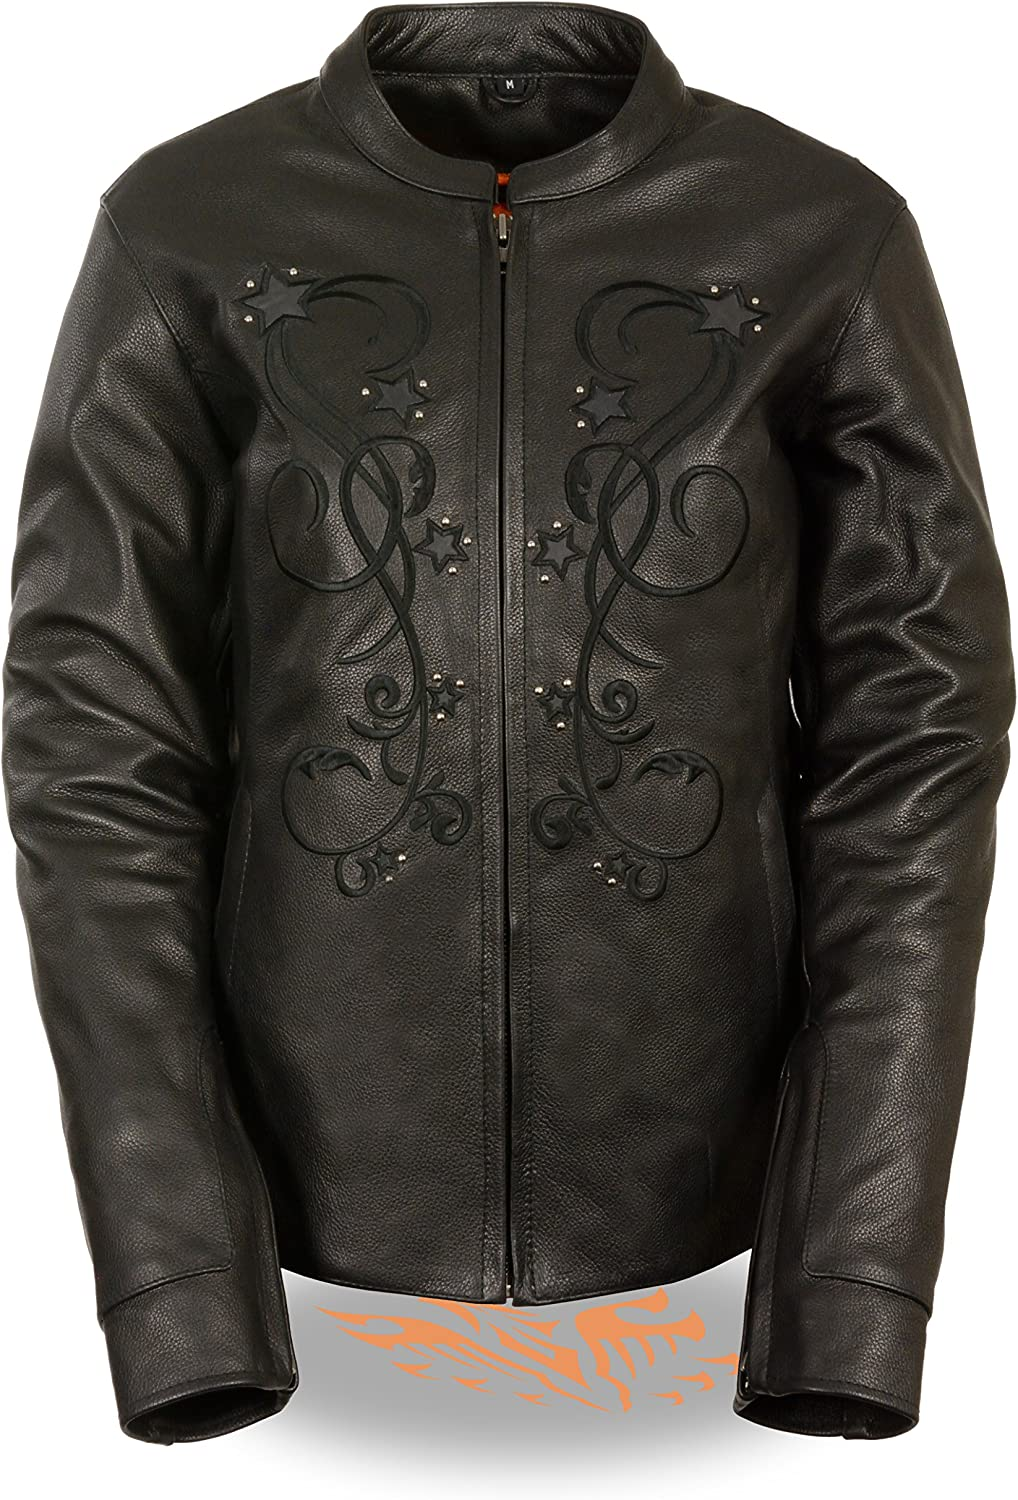 Milwaukee Leather Women's Reflective Star Jacket with Rivet Detailing